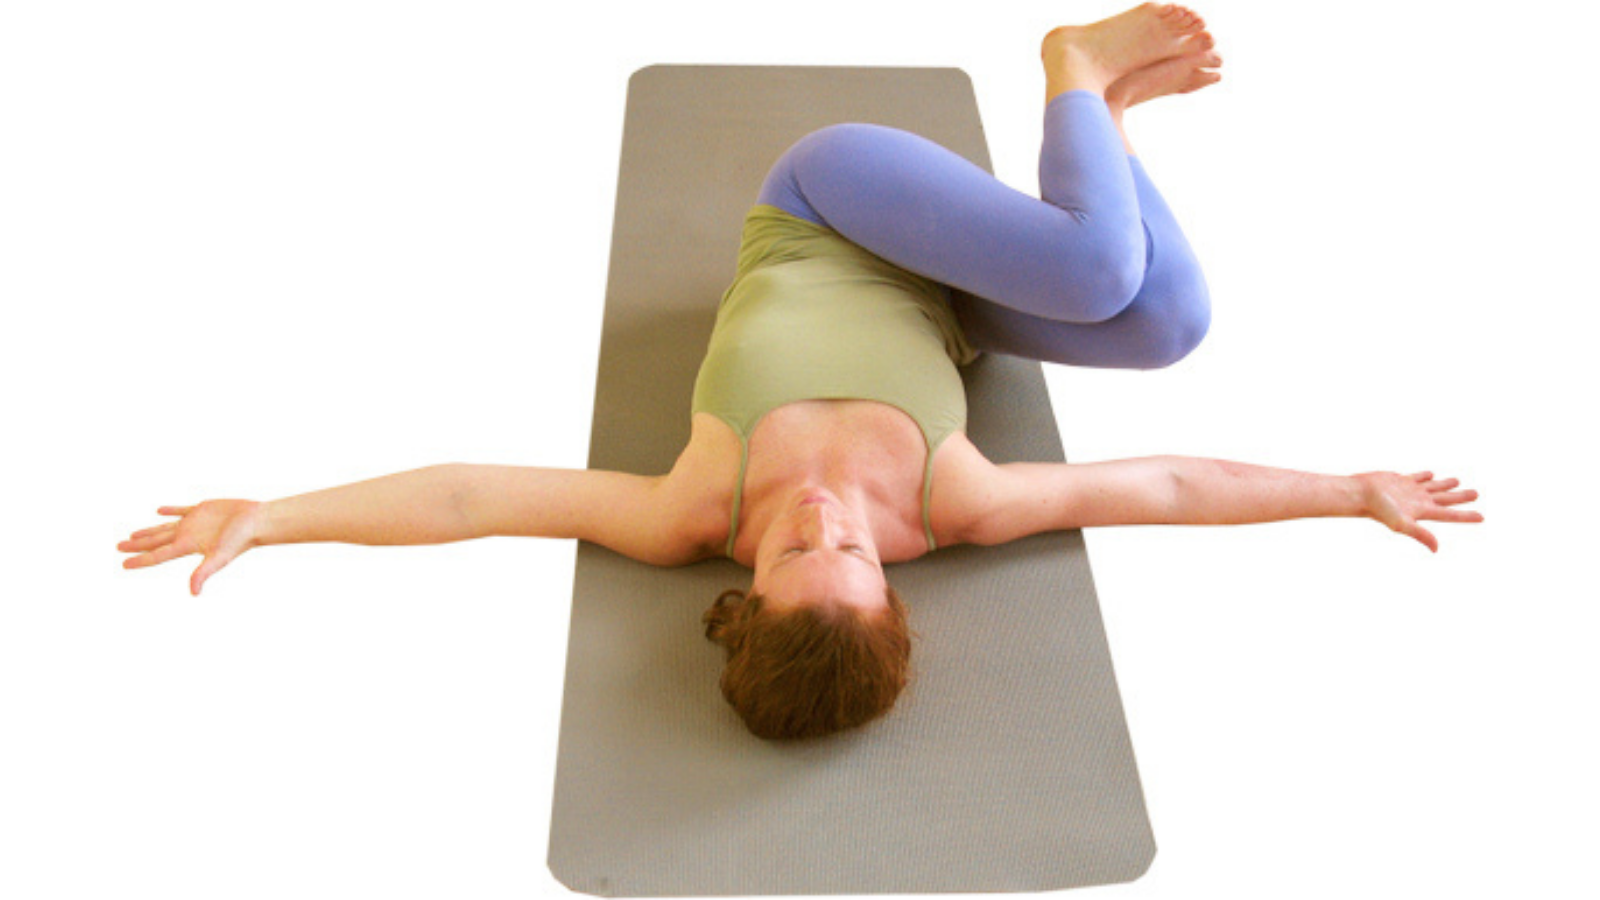 Yoga twisting for a healthy back with Belly Turning Pose